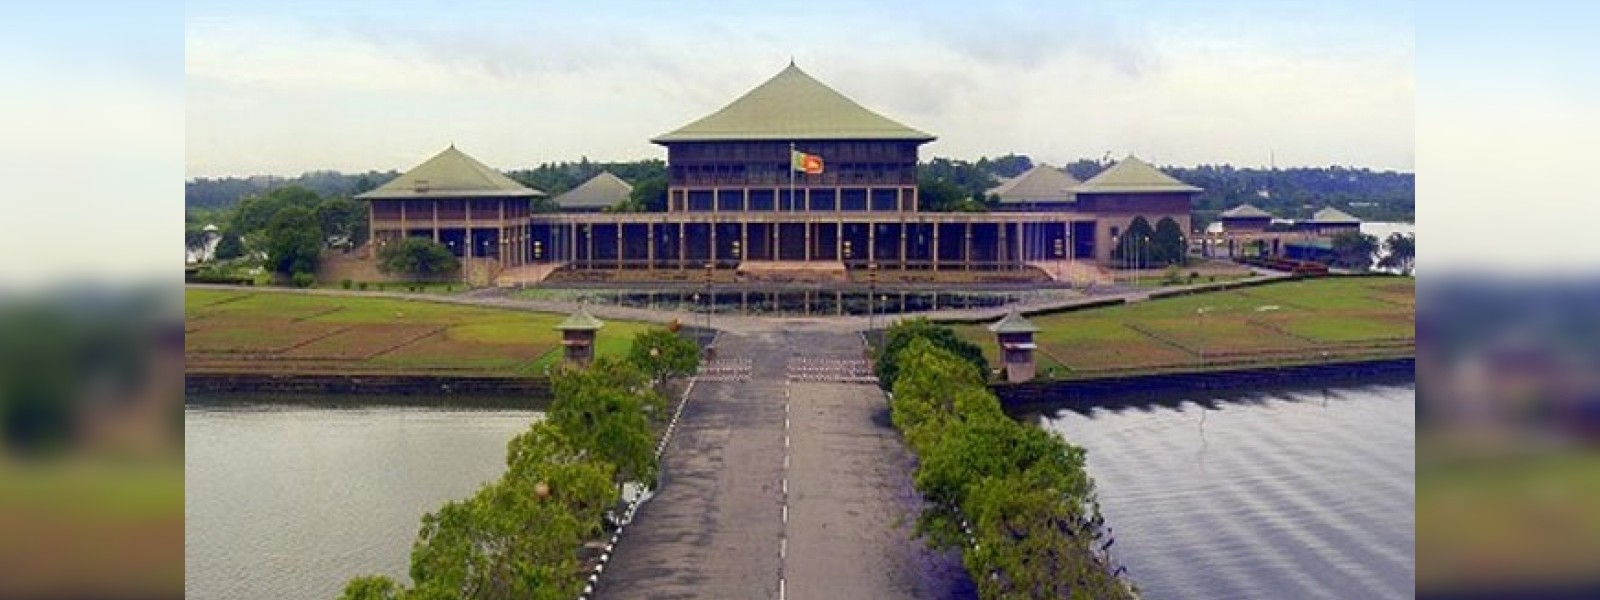 Adjournment debate on 'Current Situation in Sri Lanka' to continue today (05)